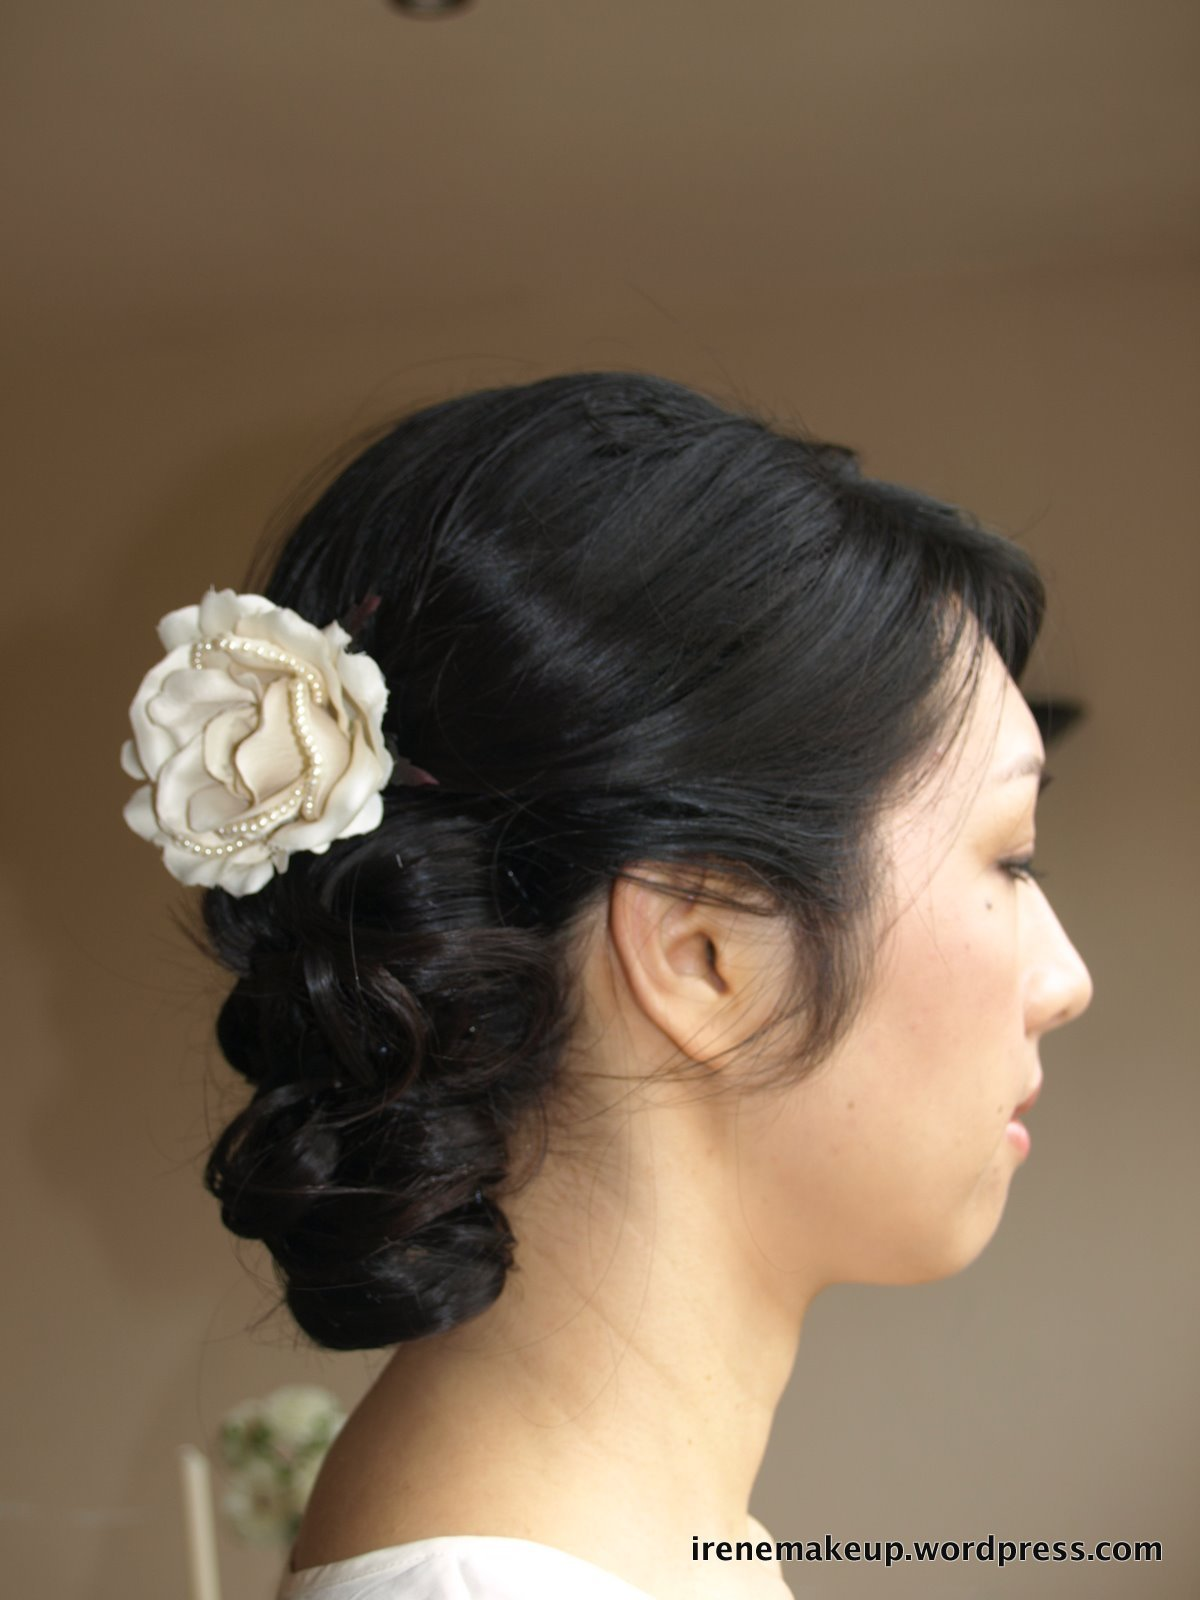 The Best Chinese Bridal Hairstyle Soft Romantic Updo 新娘盘头发型 Pictures